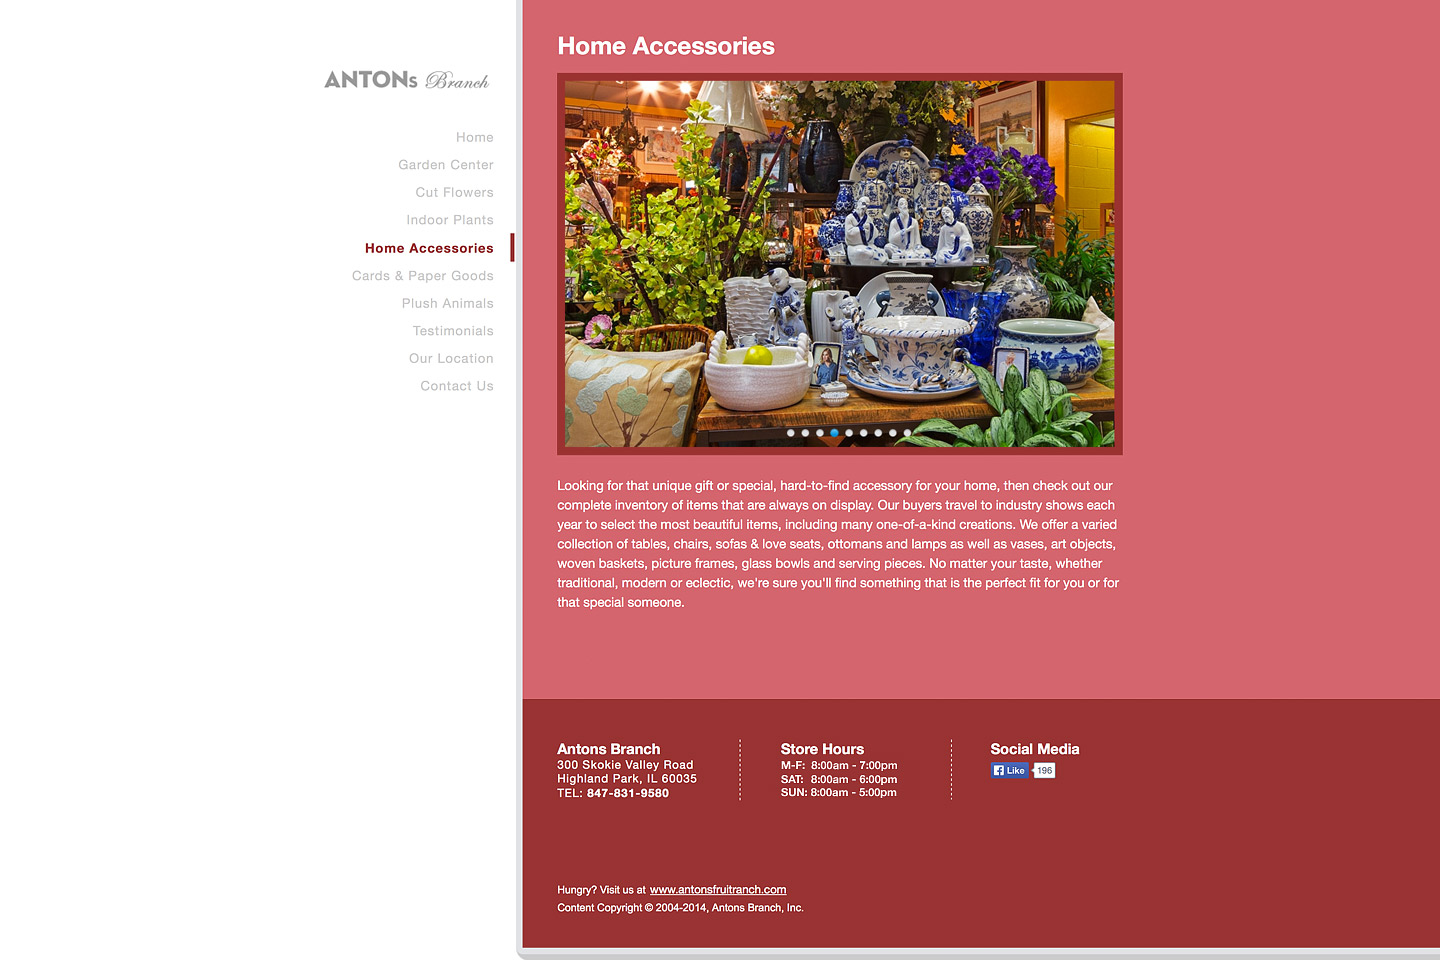 a screen capture of the home accessories page, featuring a beautiful arrangement of home accessories for sale in the antons branch showroom